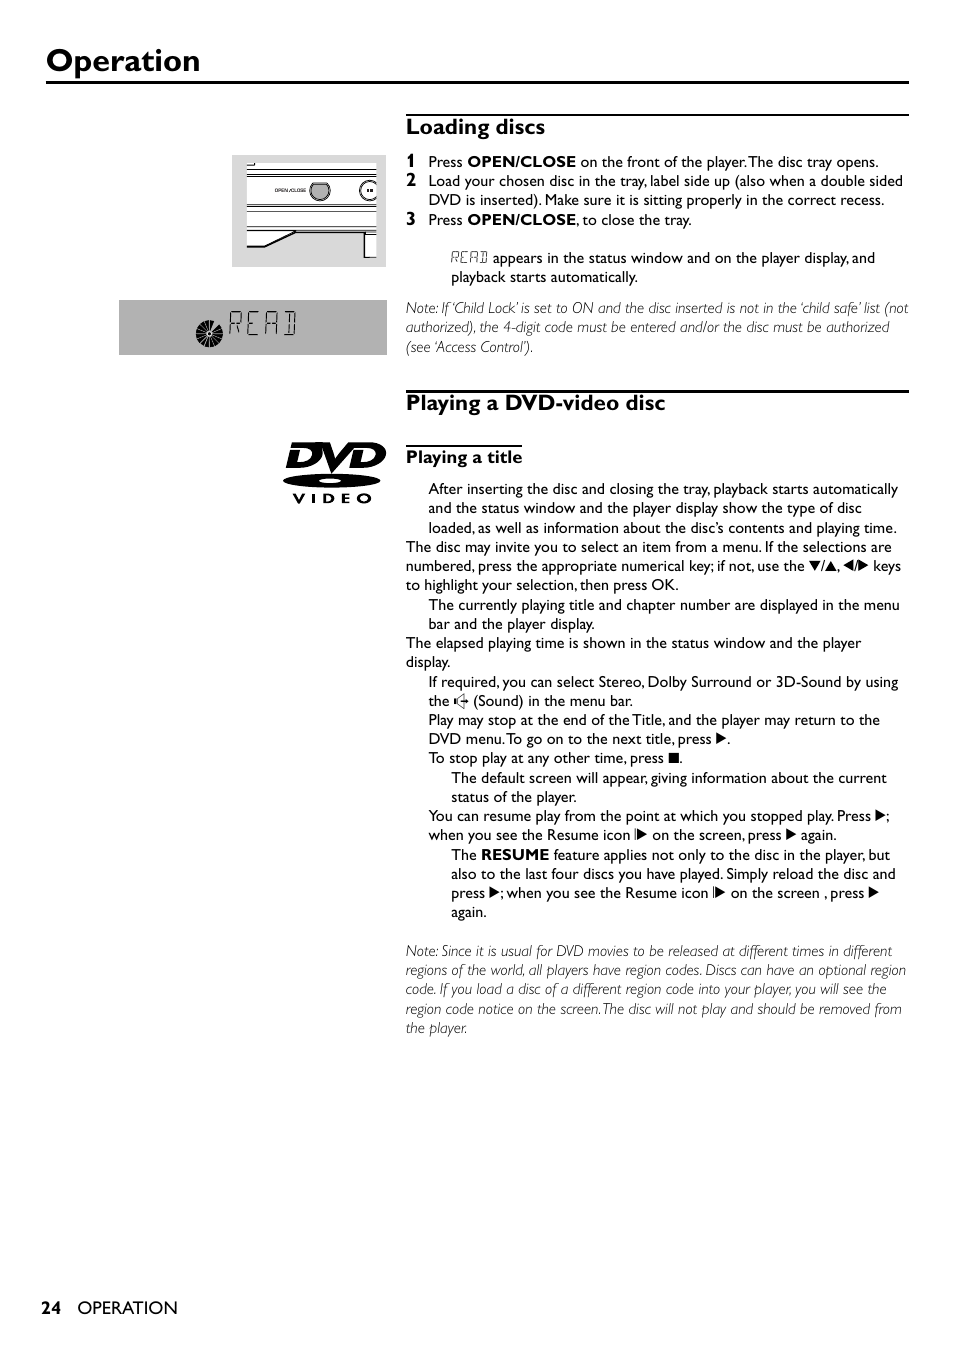 Operation, Loading discs, Playing a dvd-video disc | Yamaha DVD-S510